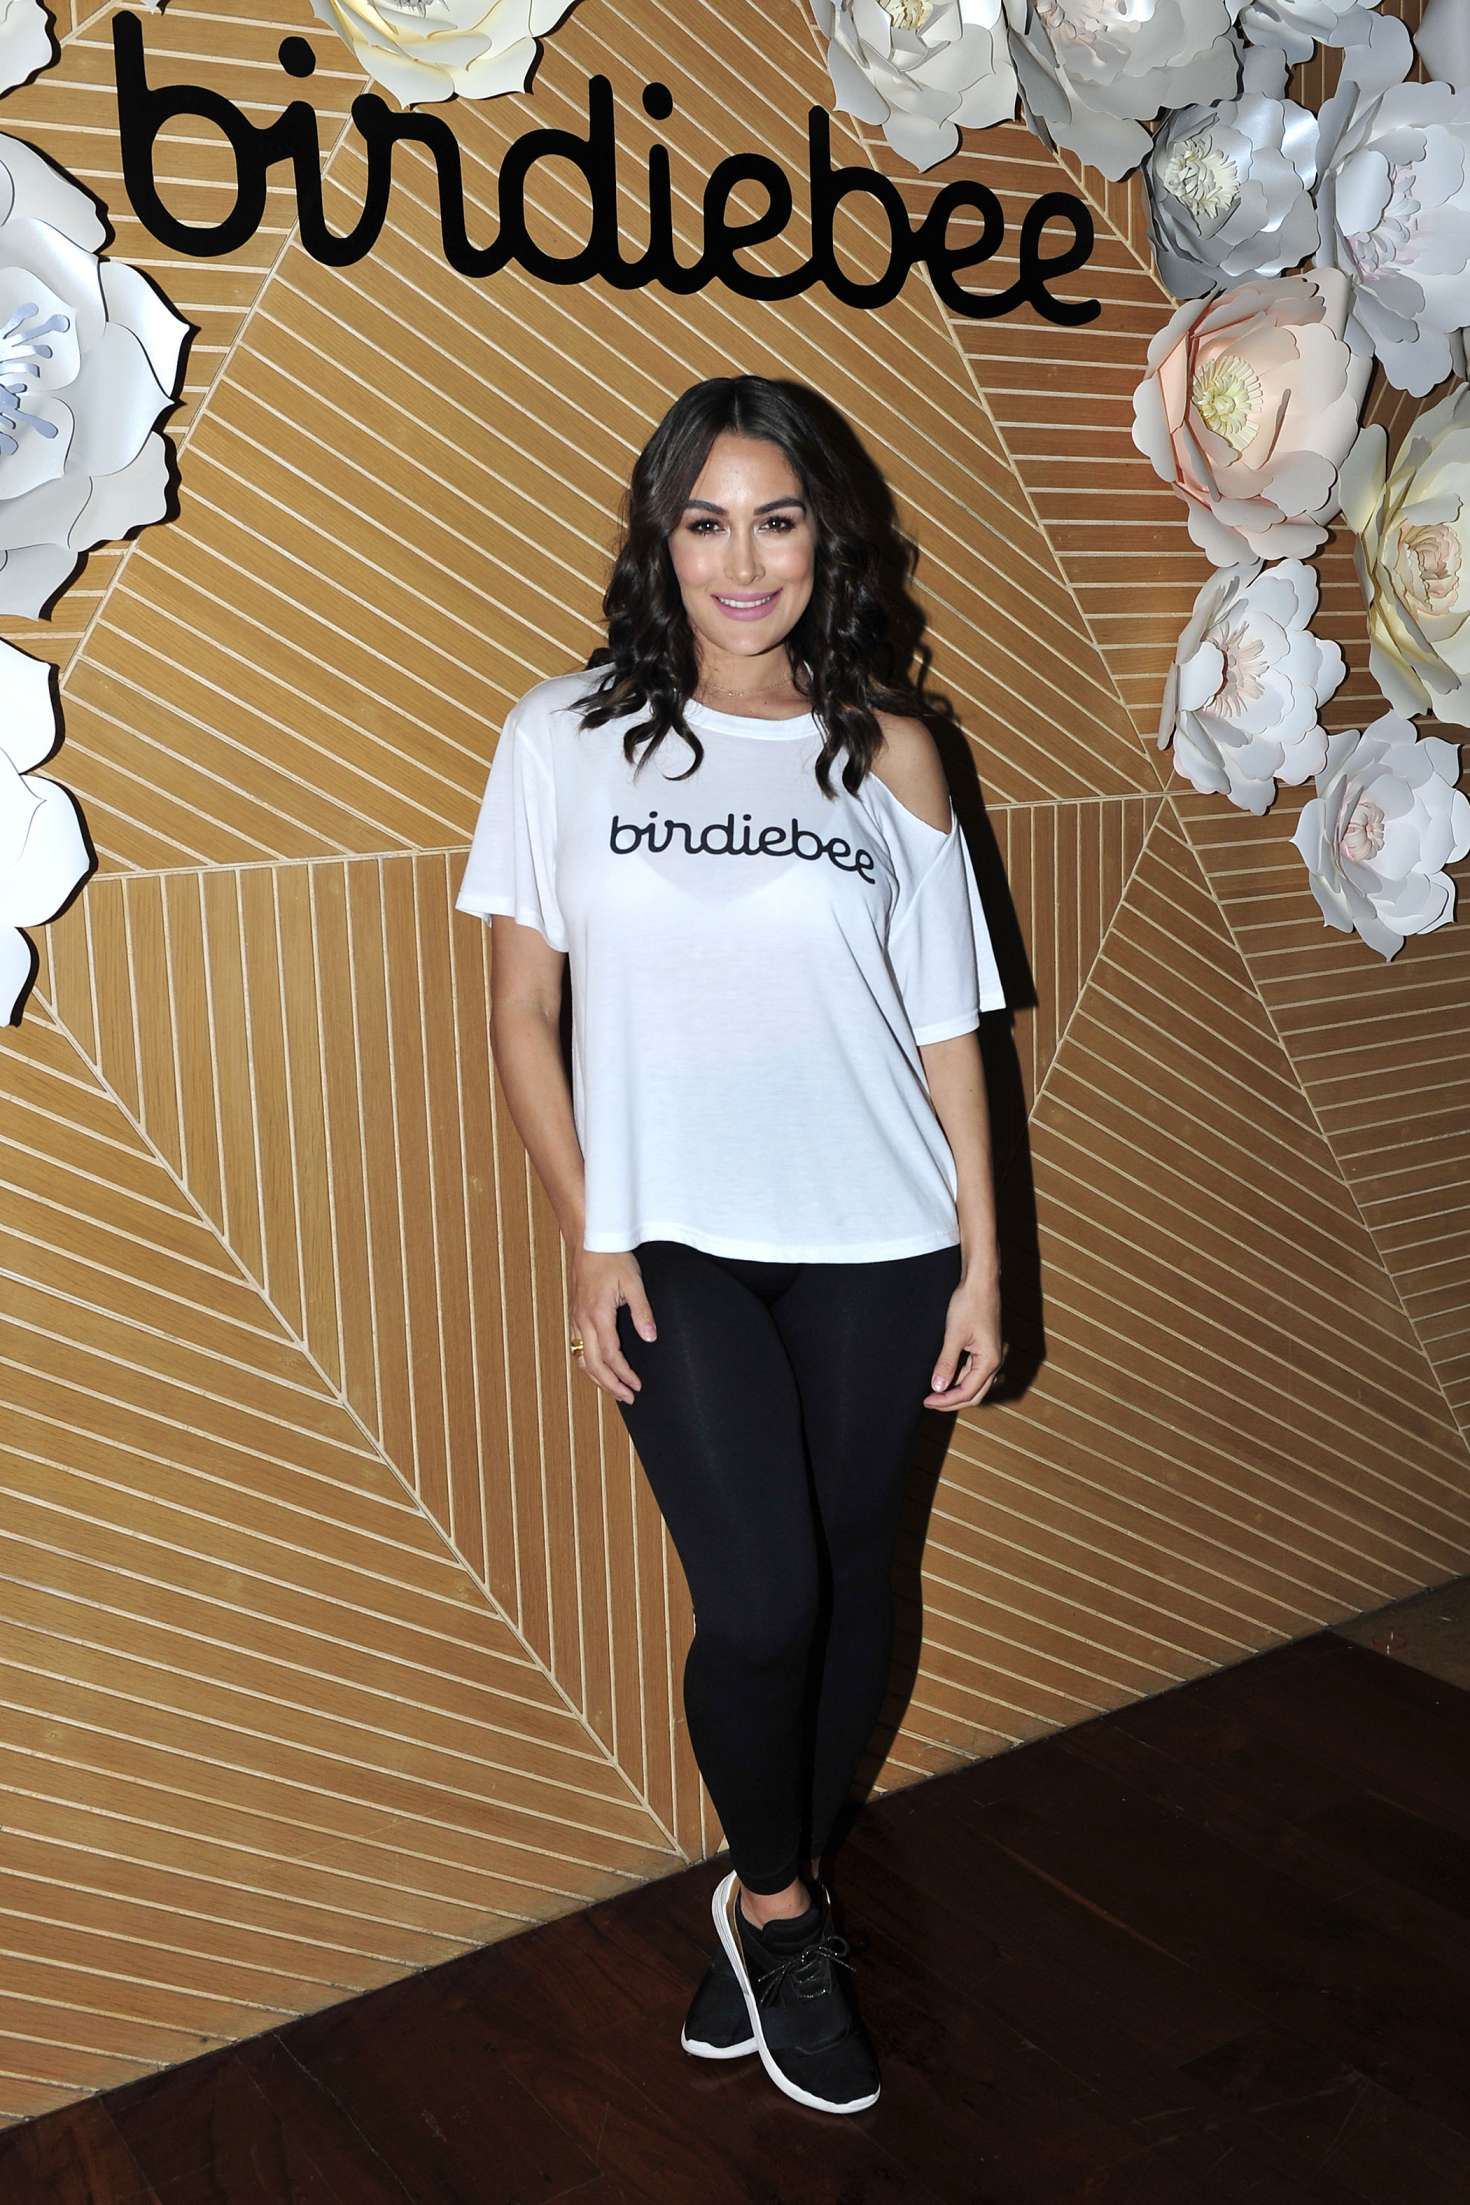 Brie Bella 2017 : Brie and Nikki Bella: Birdiebee brand of clothing launch -04